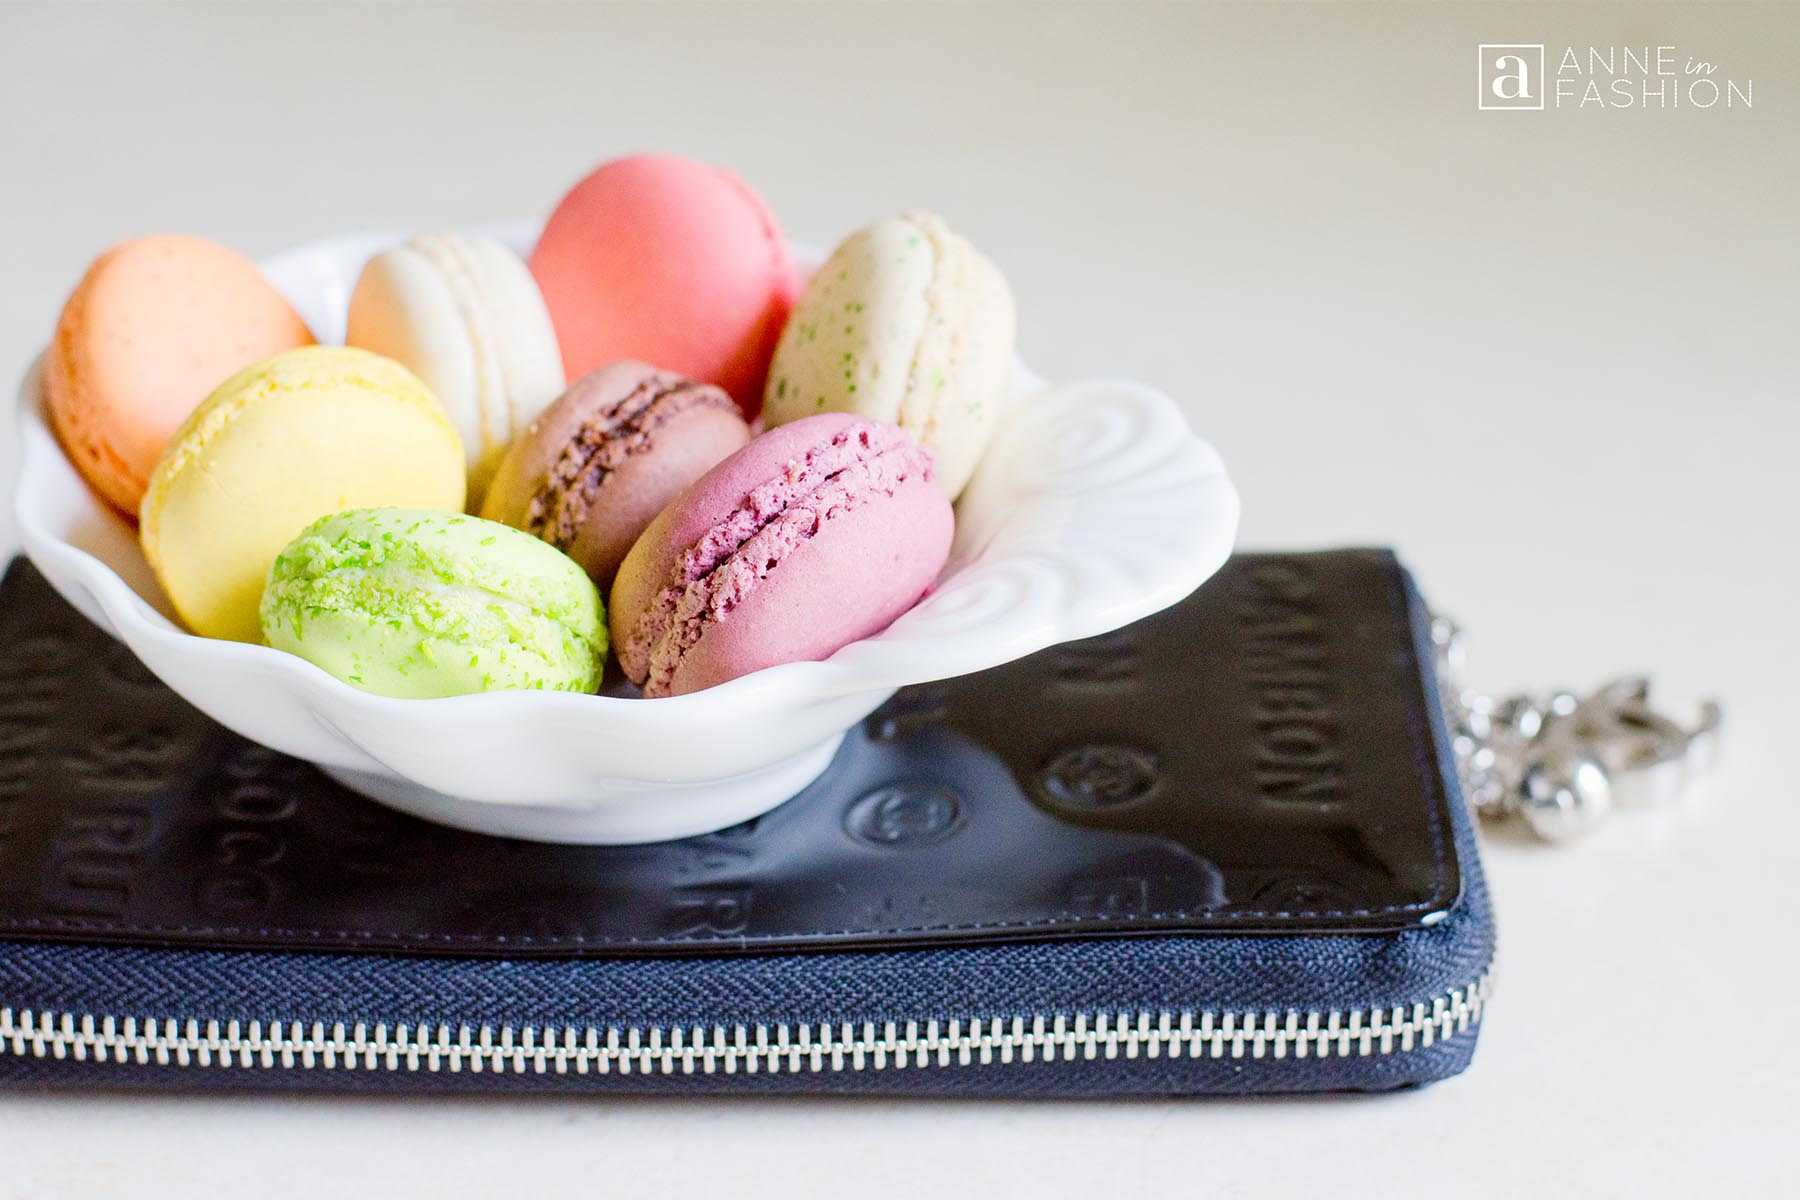 French macarons in dish with Chanel clutch wallet bag